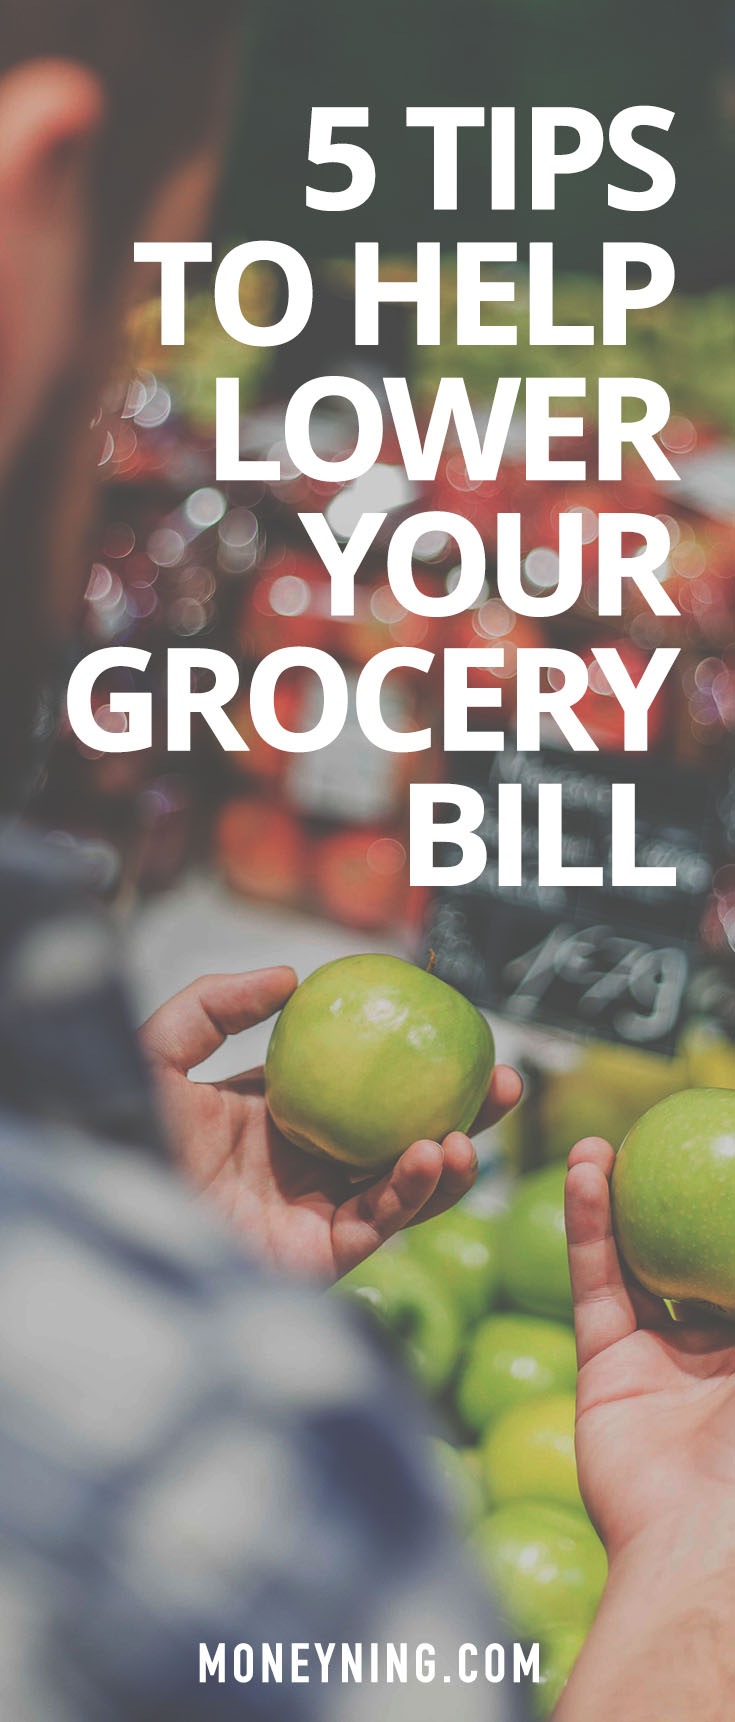 lower grocery bill